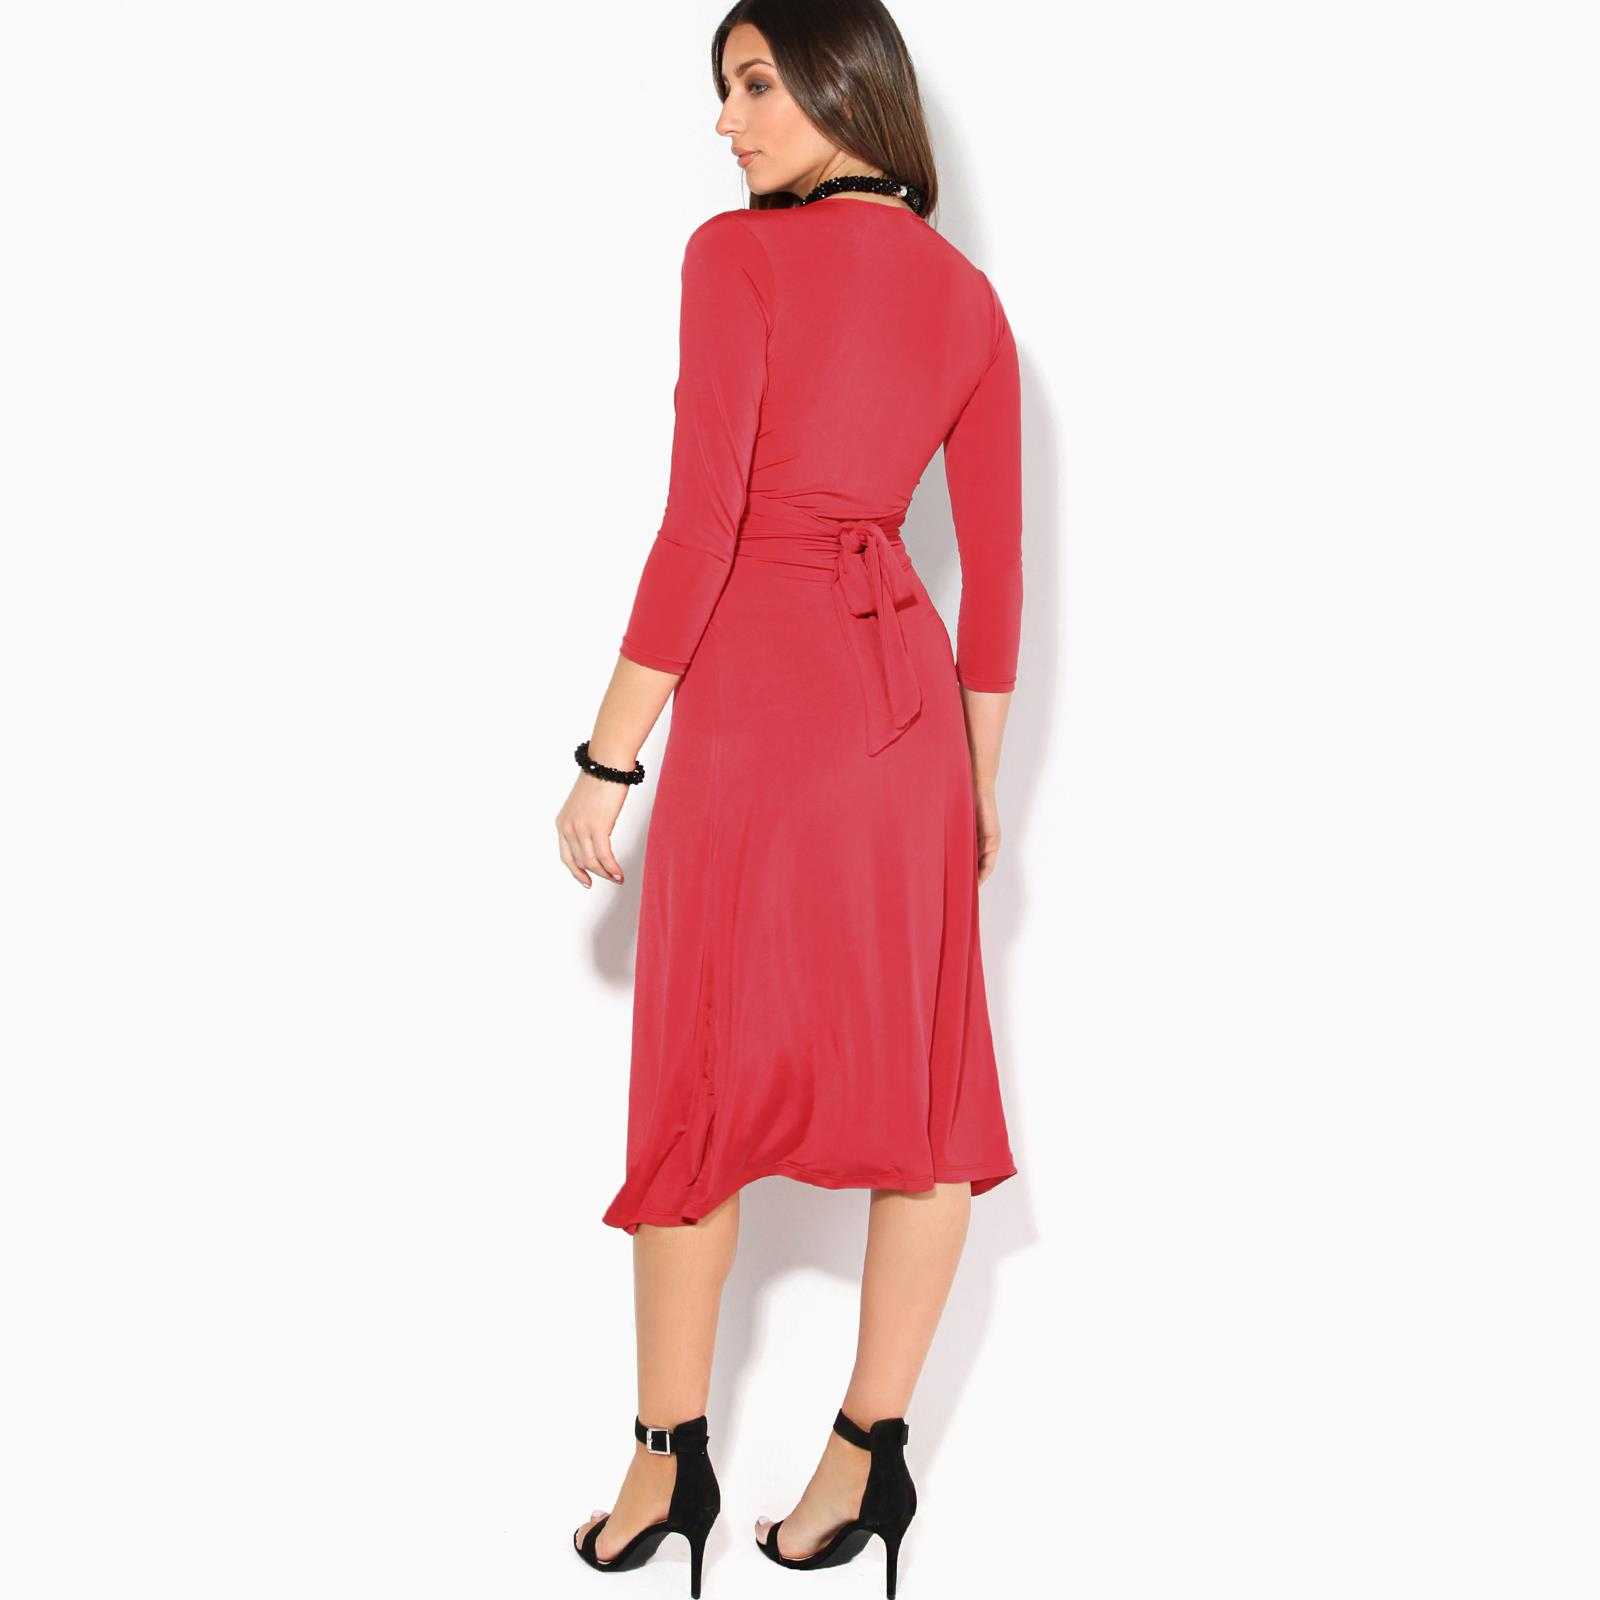 Women-Ladies-V-Neck-Midi-Dress-Knee-Long-A-Line-Skirt-3-4-Sleeve-Knot-Party-Work thumbnail 10